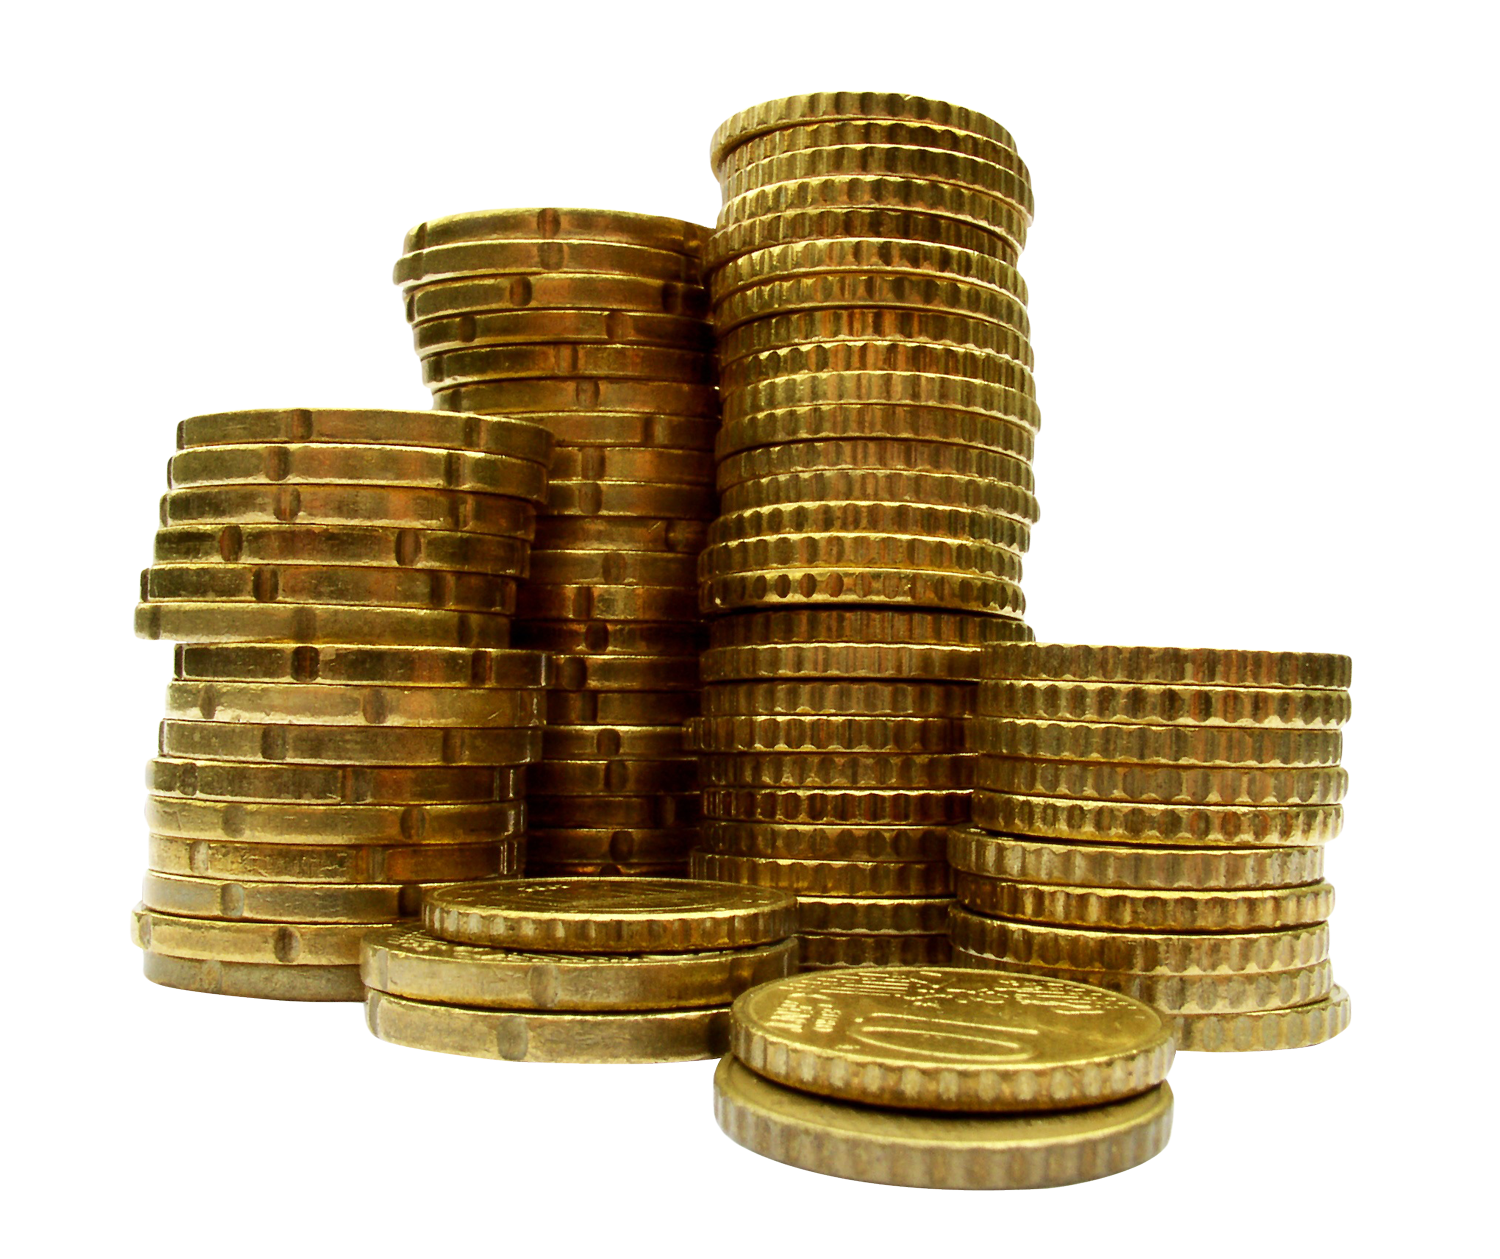 Coins Free PNG Images, Pile Of Gold Coins, Coins Money.